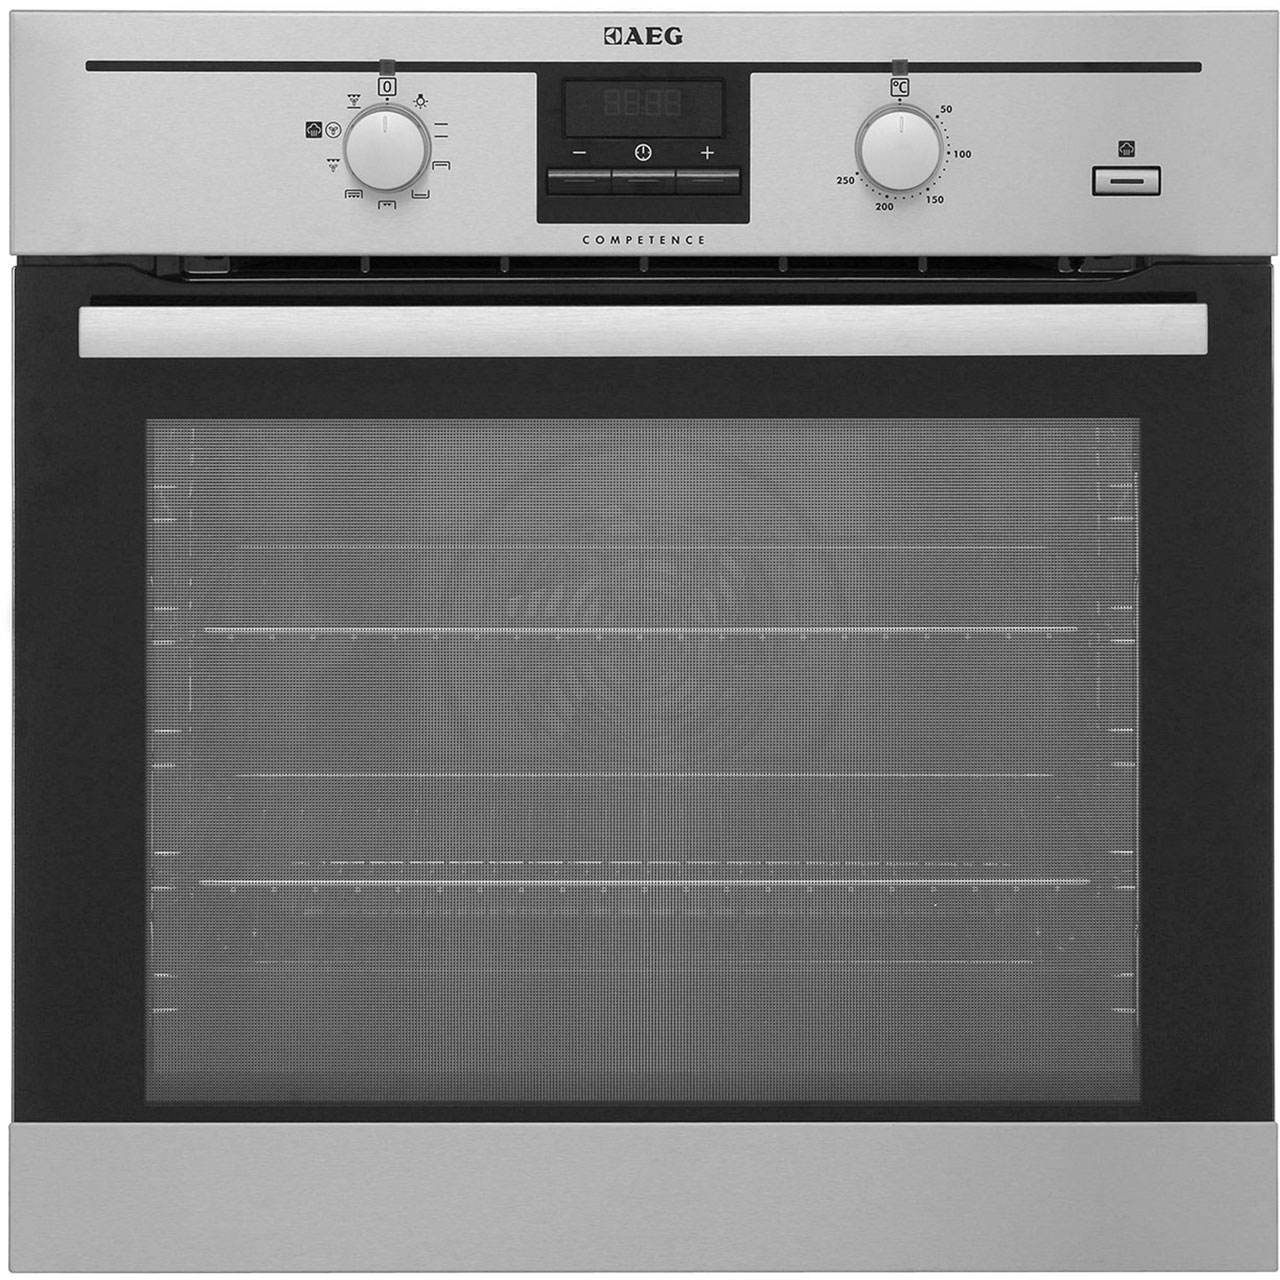 AEG Competence BE200362KM Integrated Single Oven in Stainless Steel